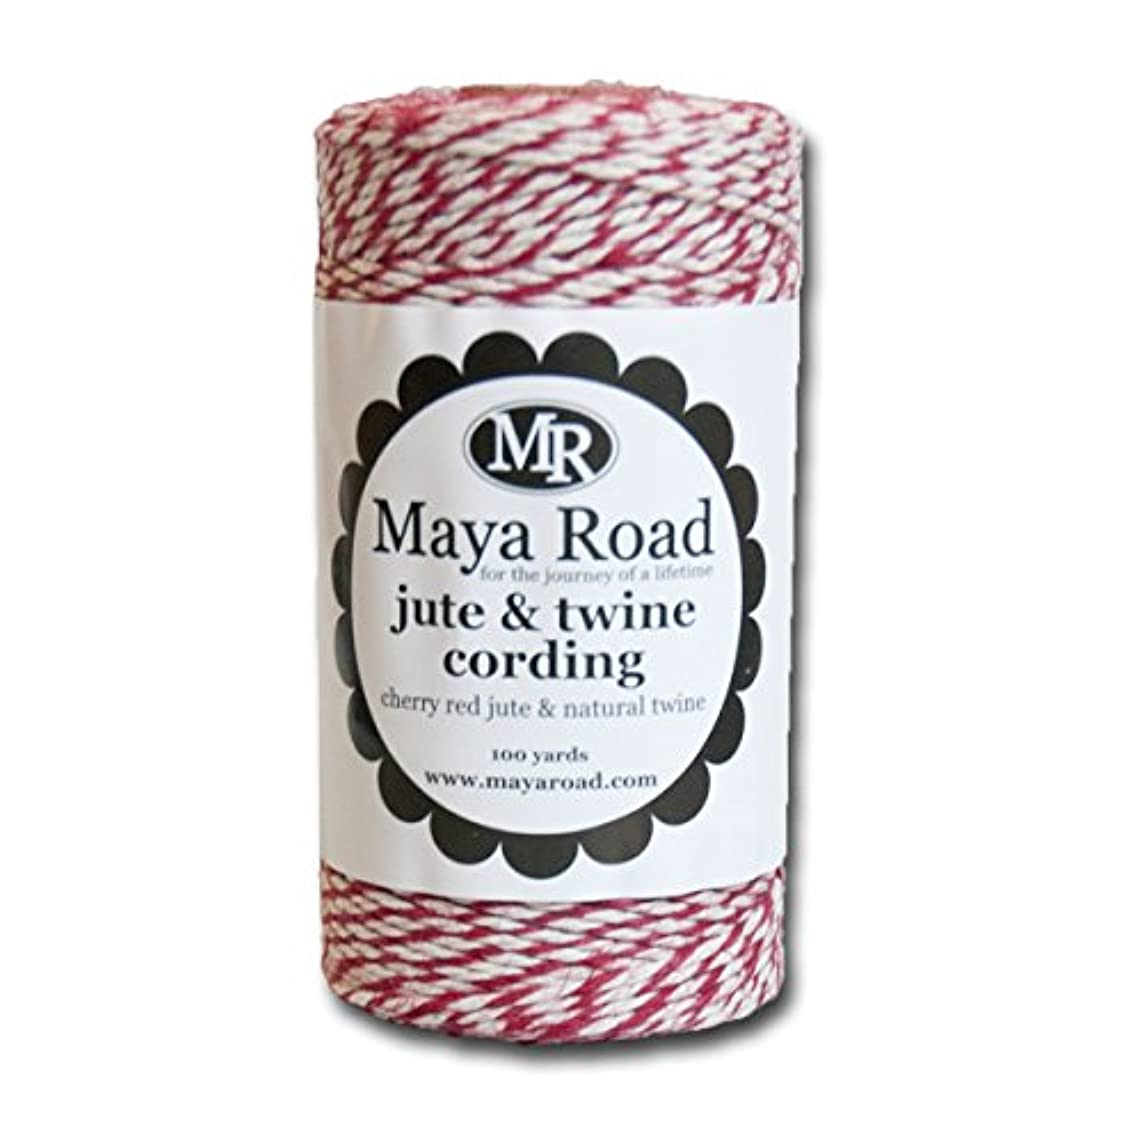 Maya Road TC3061 Cherry Red Jute & Twine Cording for Paper Crafts and Scrapbooking